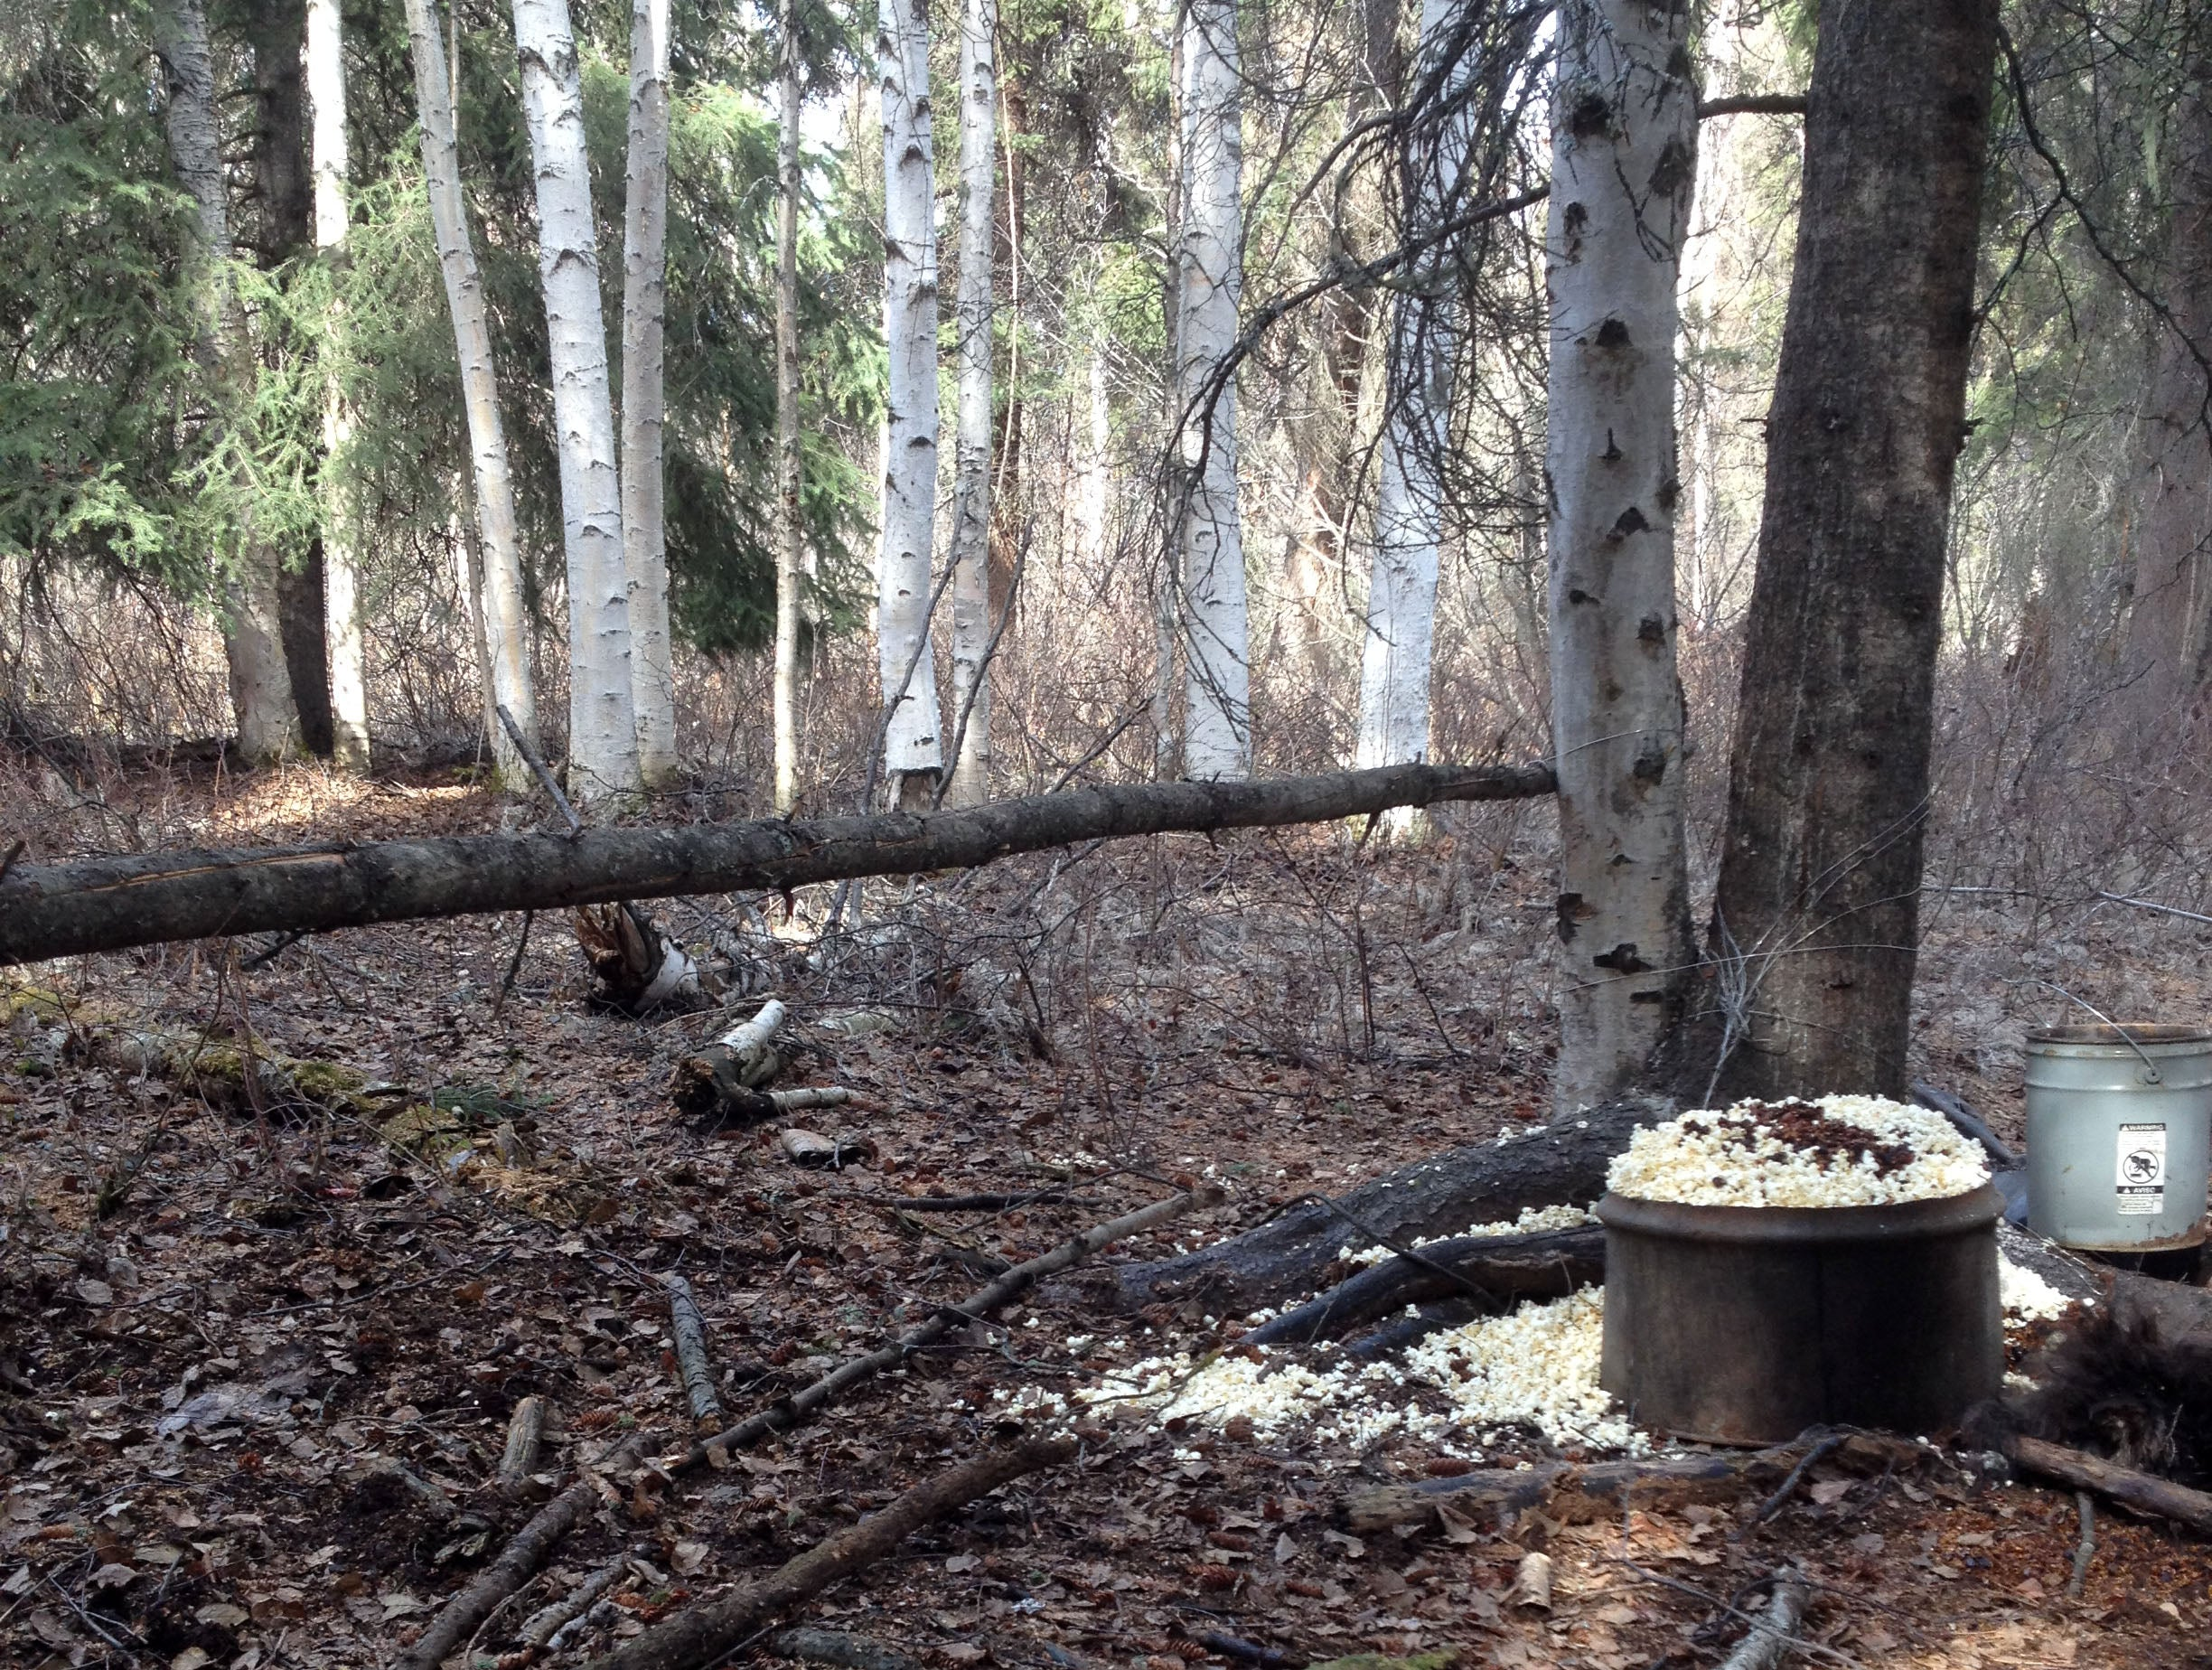 Black Bear Hunting: Forget the Barrel, Use a Limbo Pole to Size Up Bruins